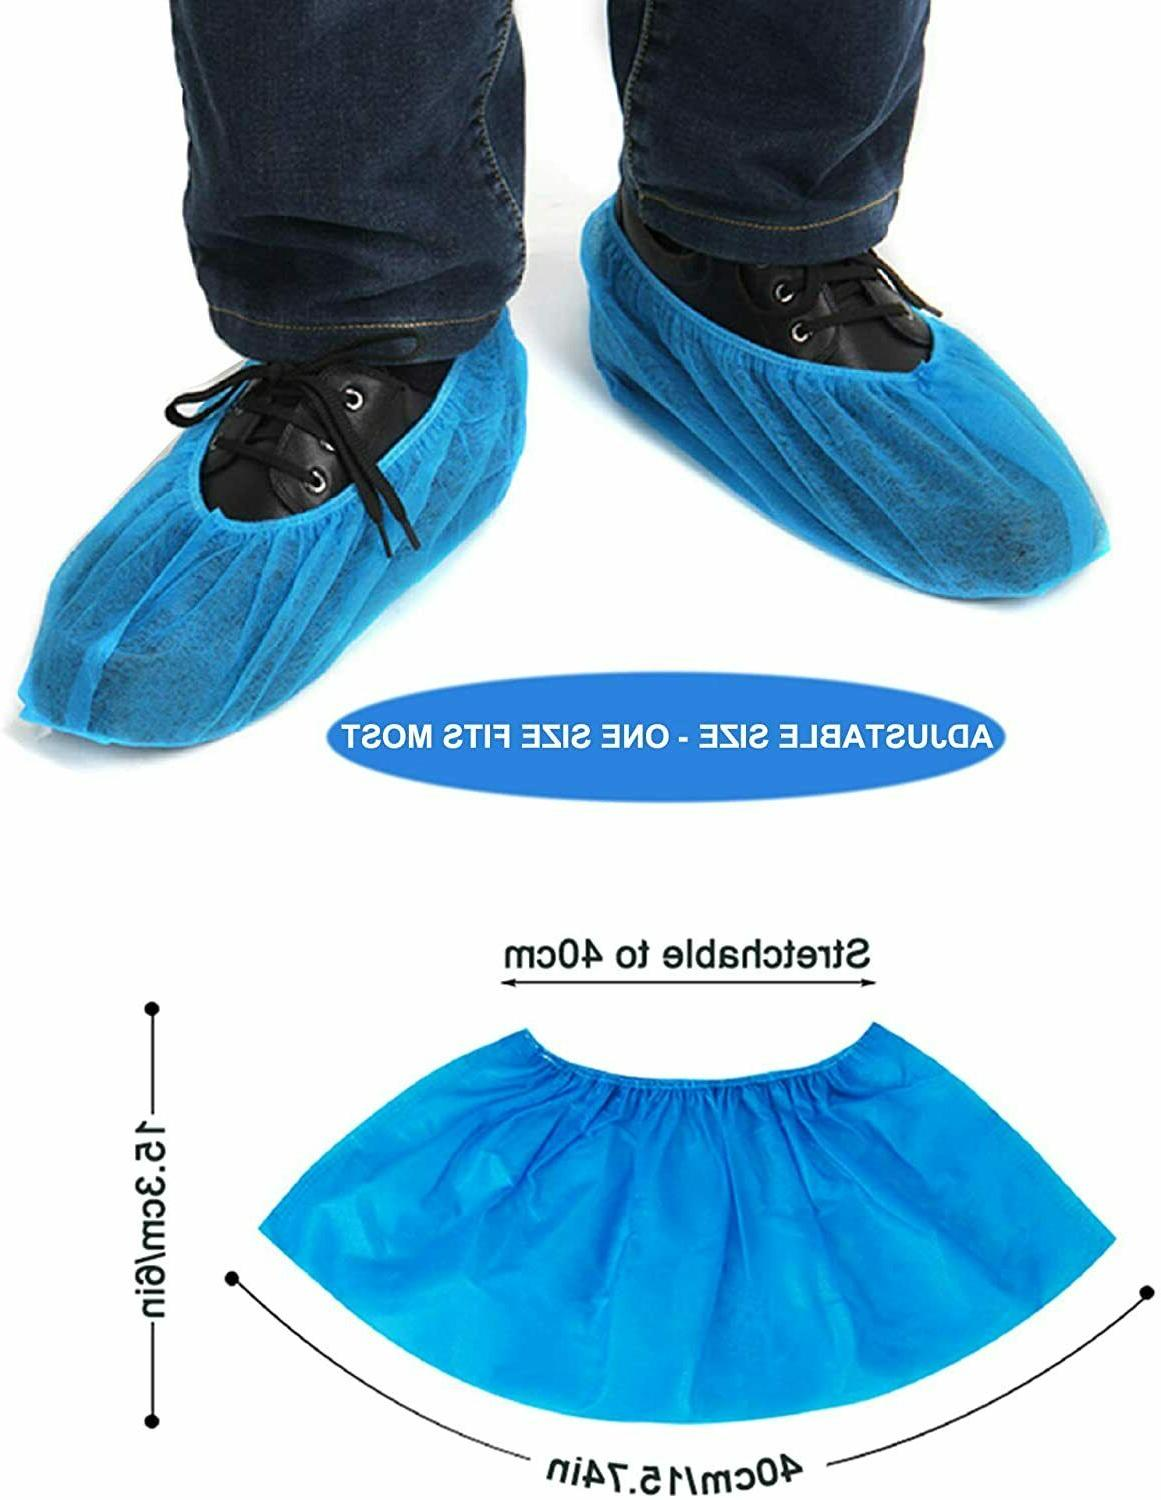 Shoe Covers Pieces/50 Pairs Disposable Size Large Fits